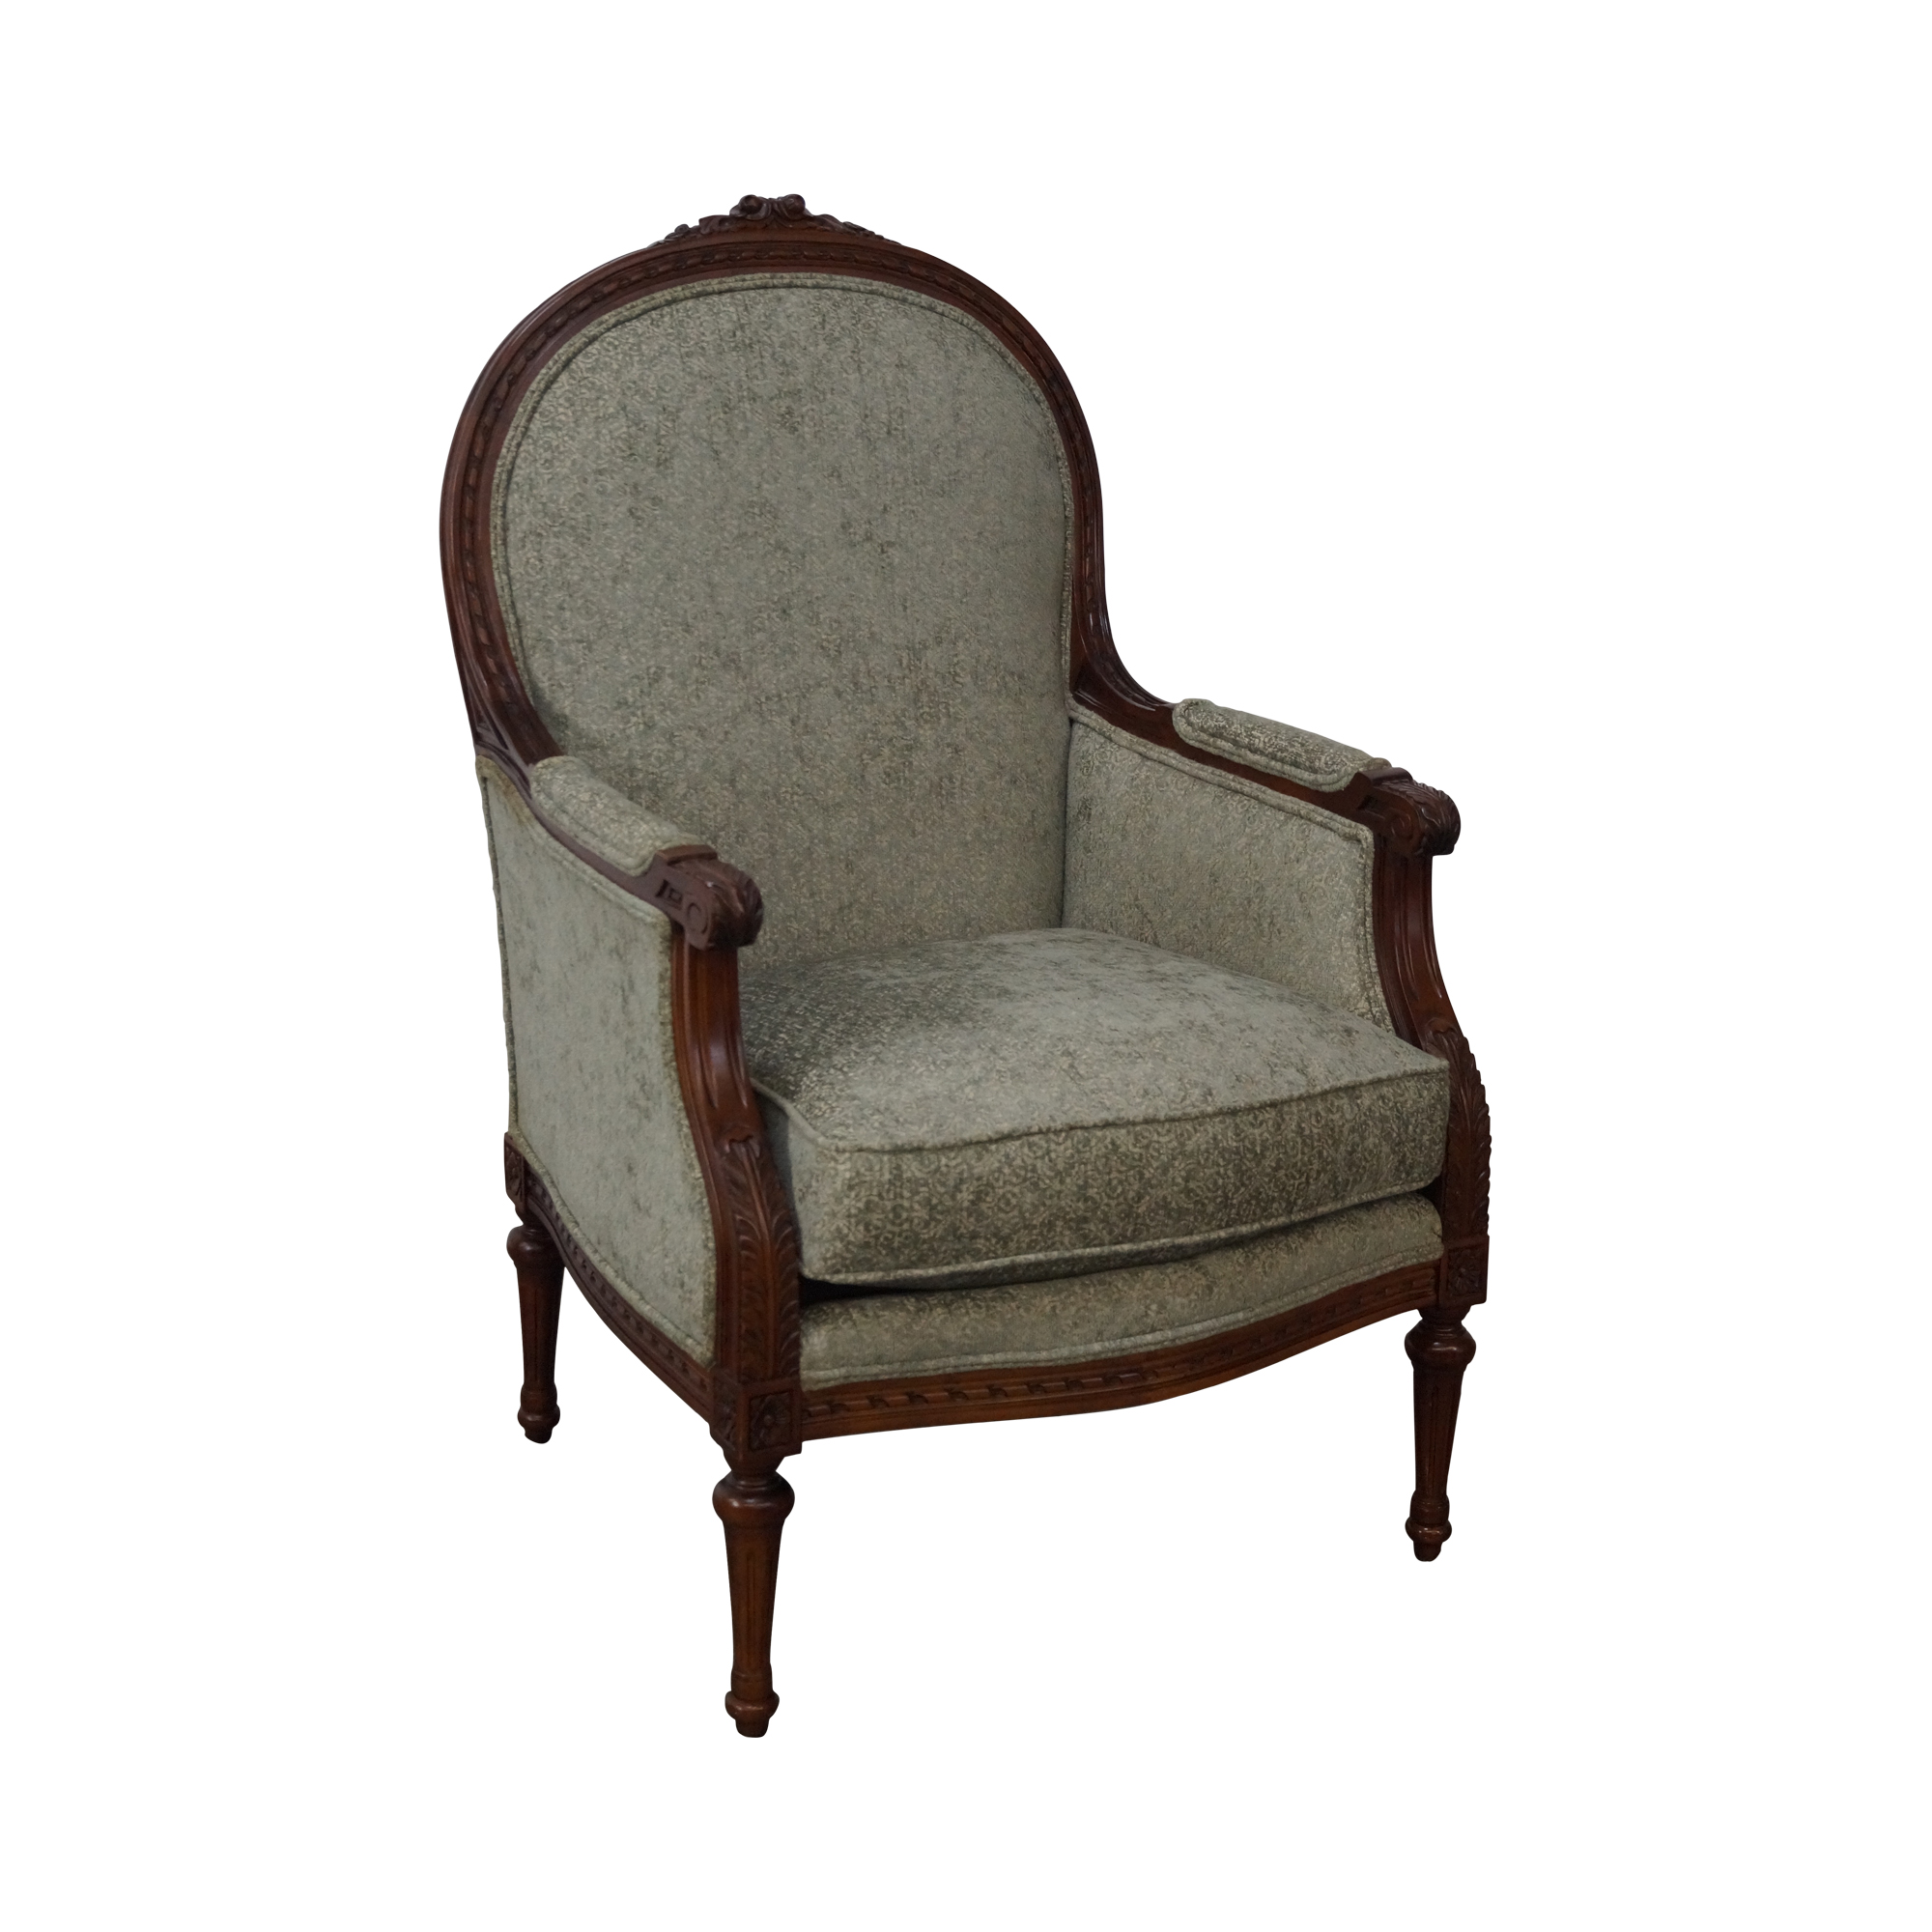 thomasville french louis xvi style bergere chair chairish. Black Bedroom Furniture Sets. Home Design Ideas